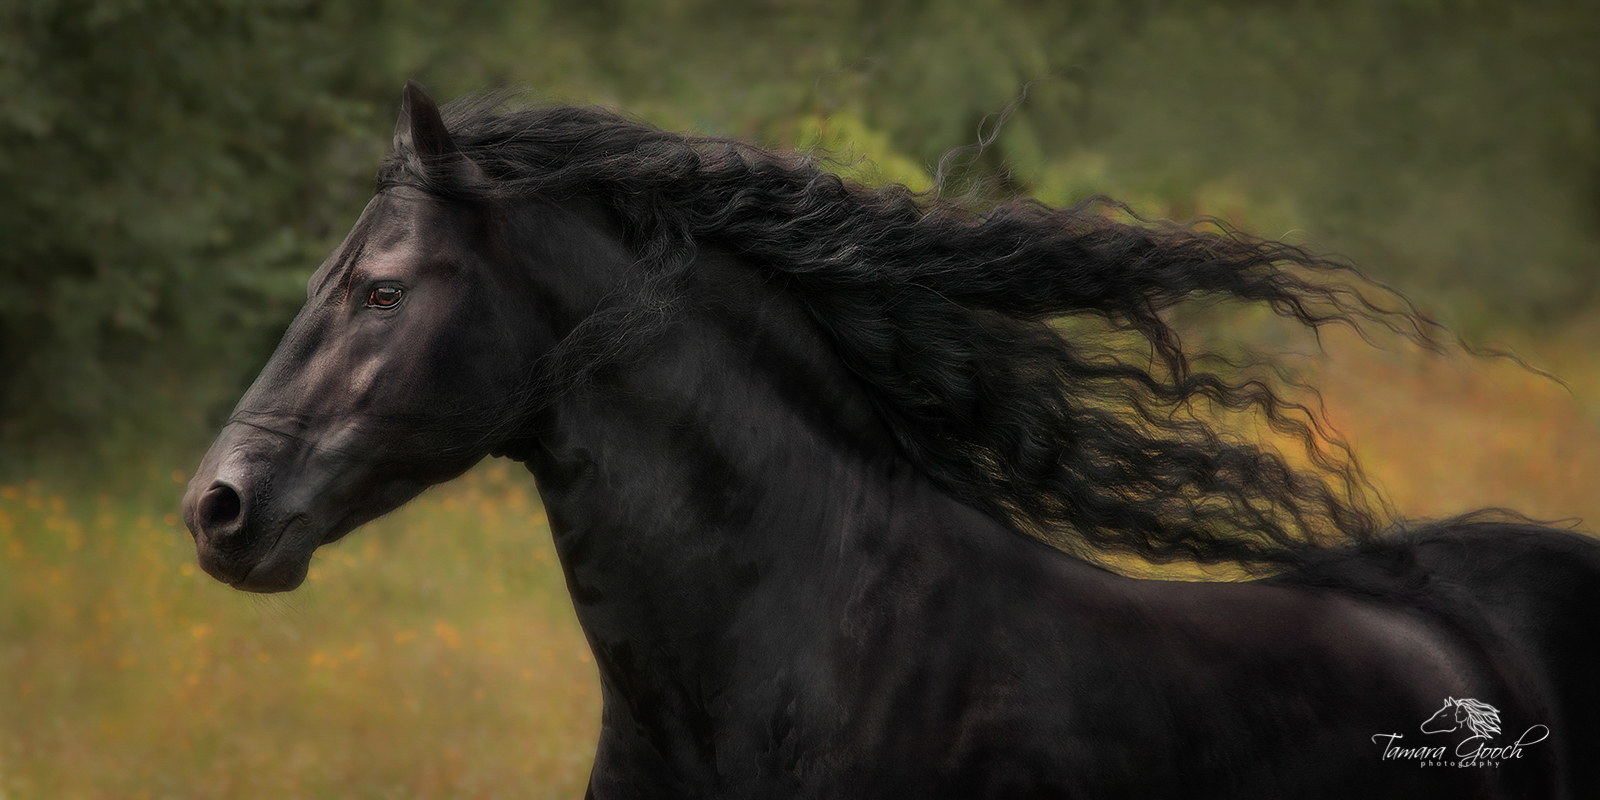 A photo of a Friesian stallion galloping through a spring field with his long mane flying.